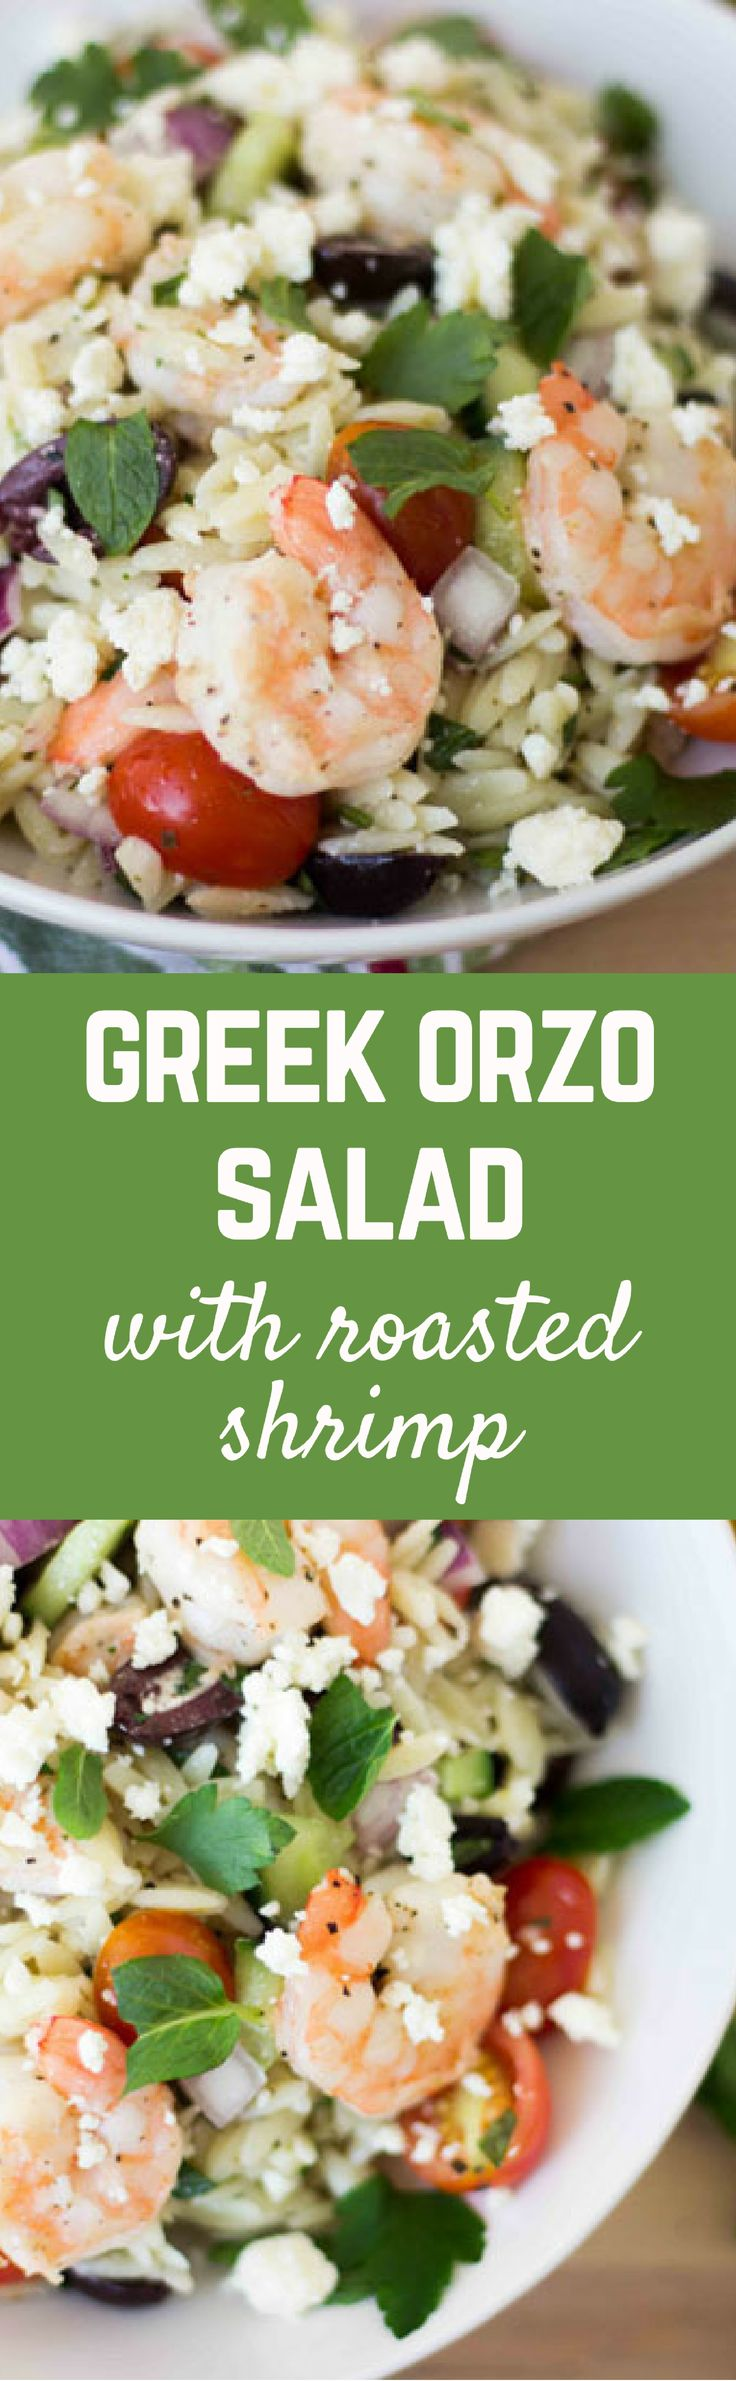 This flavorful Greek orzo salad will satisfy you with the Greek flavors you love including mint, lemon and parsley, tossed with orzo, it won't require fat-pants! Get the recipe on RachelCooks.com!